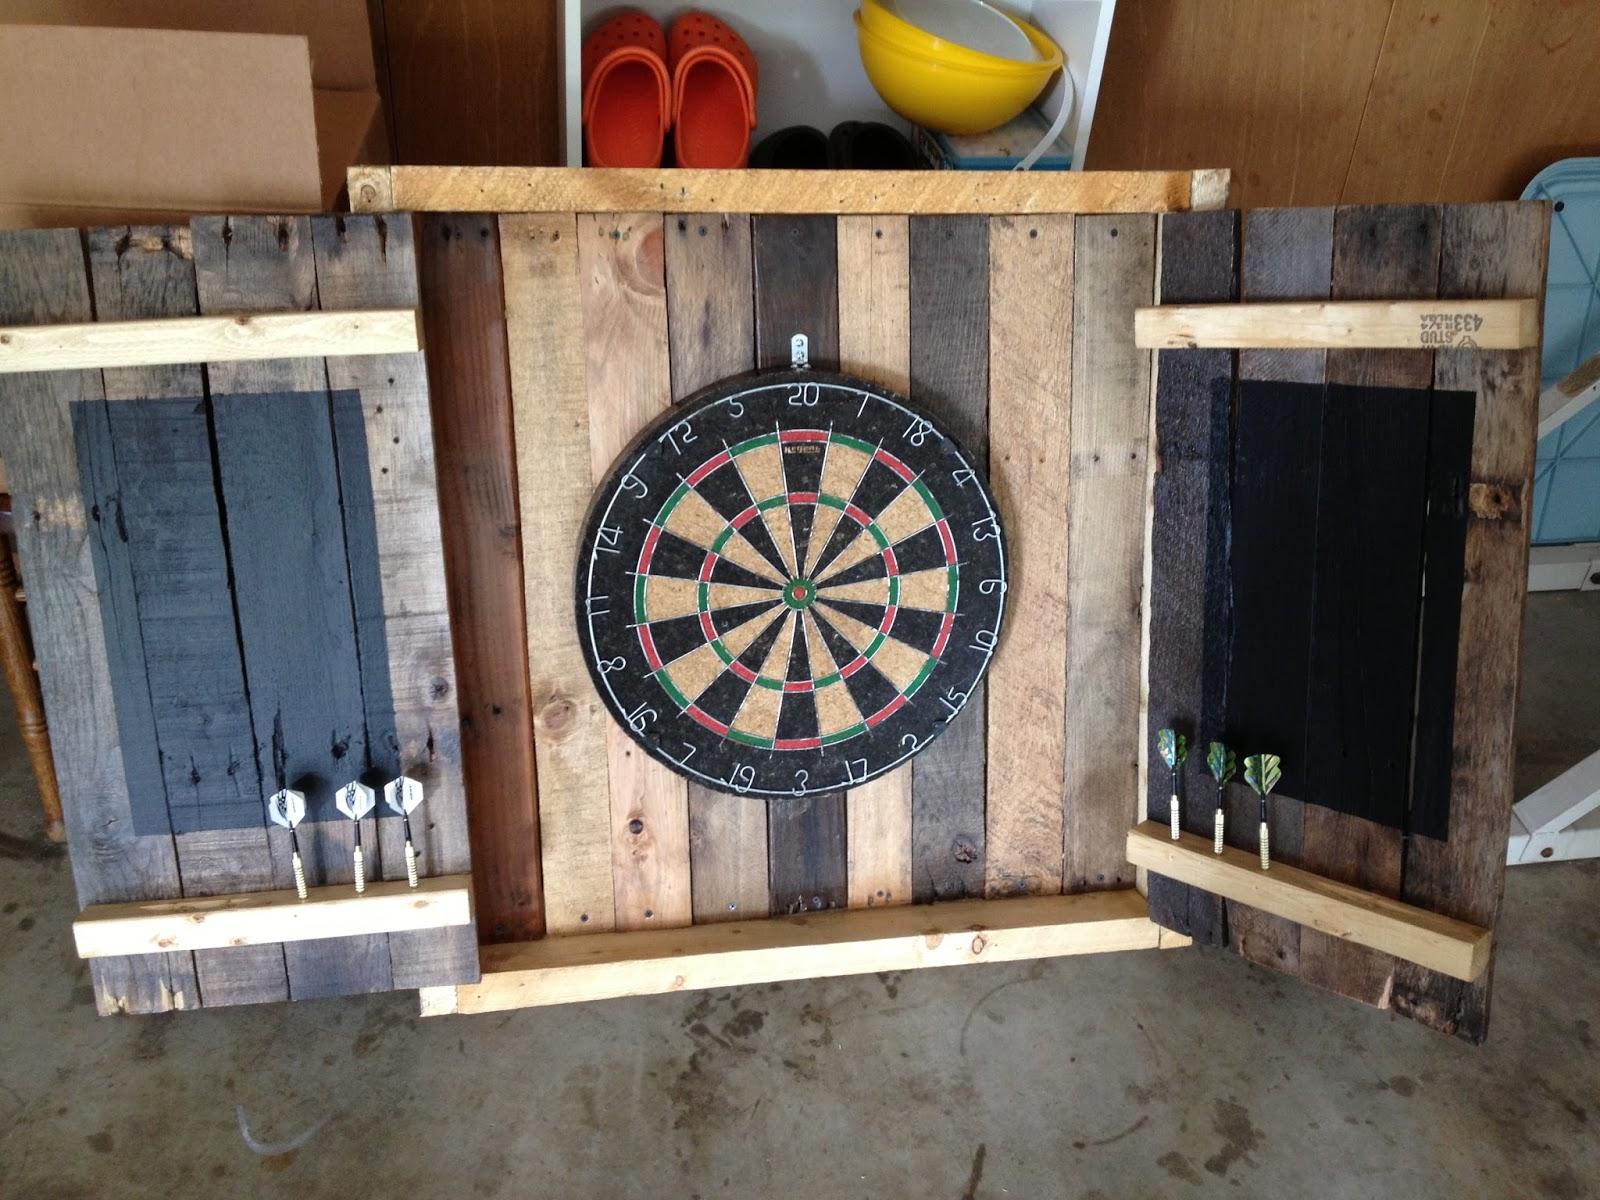 A Friend Of Mine Found A Dart Board A Few Months Ago, And Wanted To Learn  How To Play. After The Dart Board Sat Around The House For A While, ...